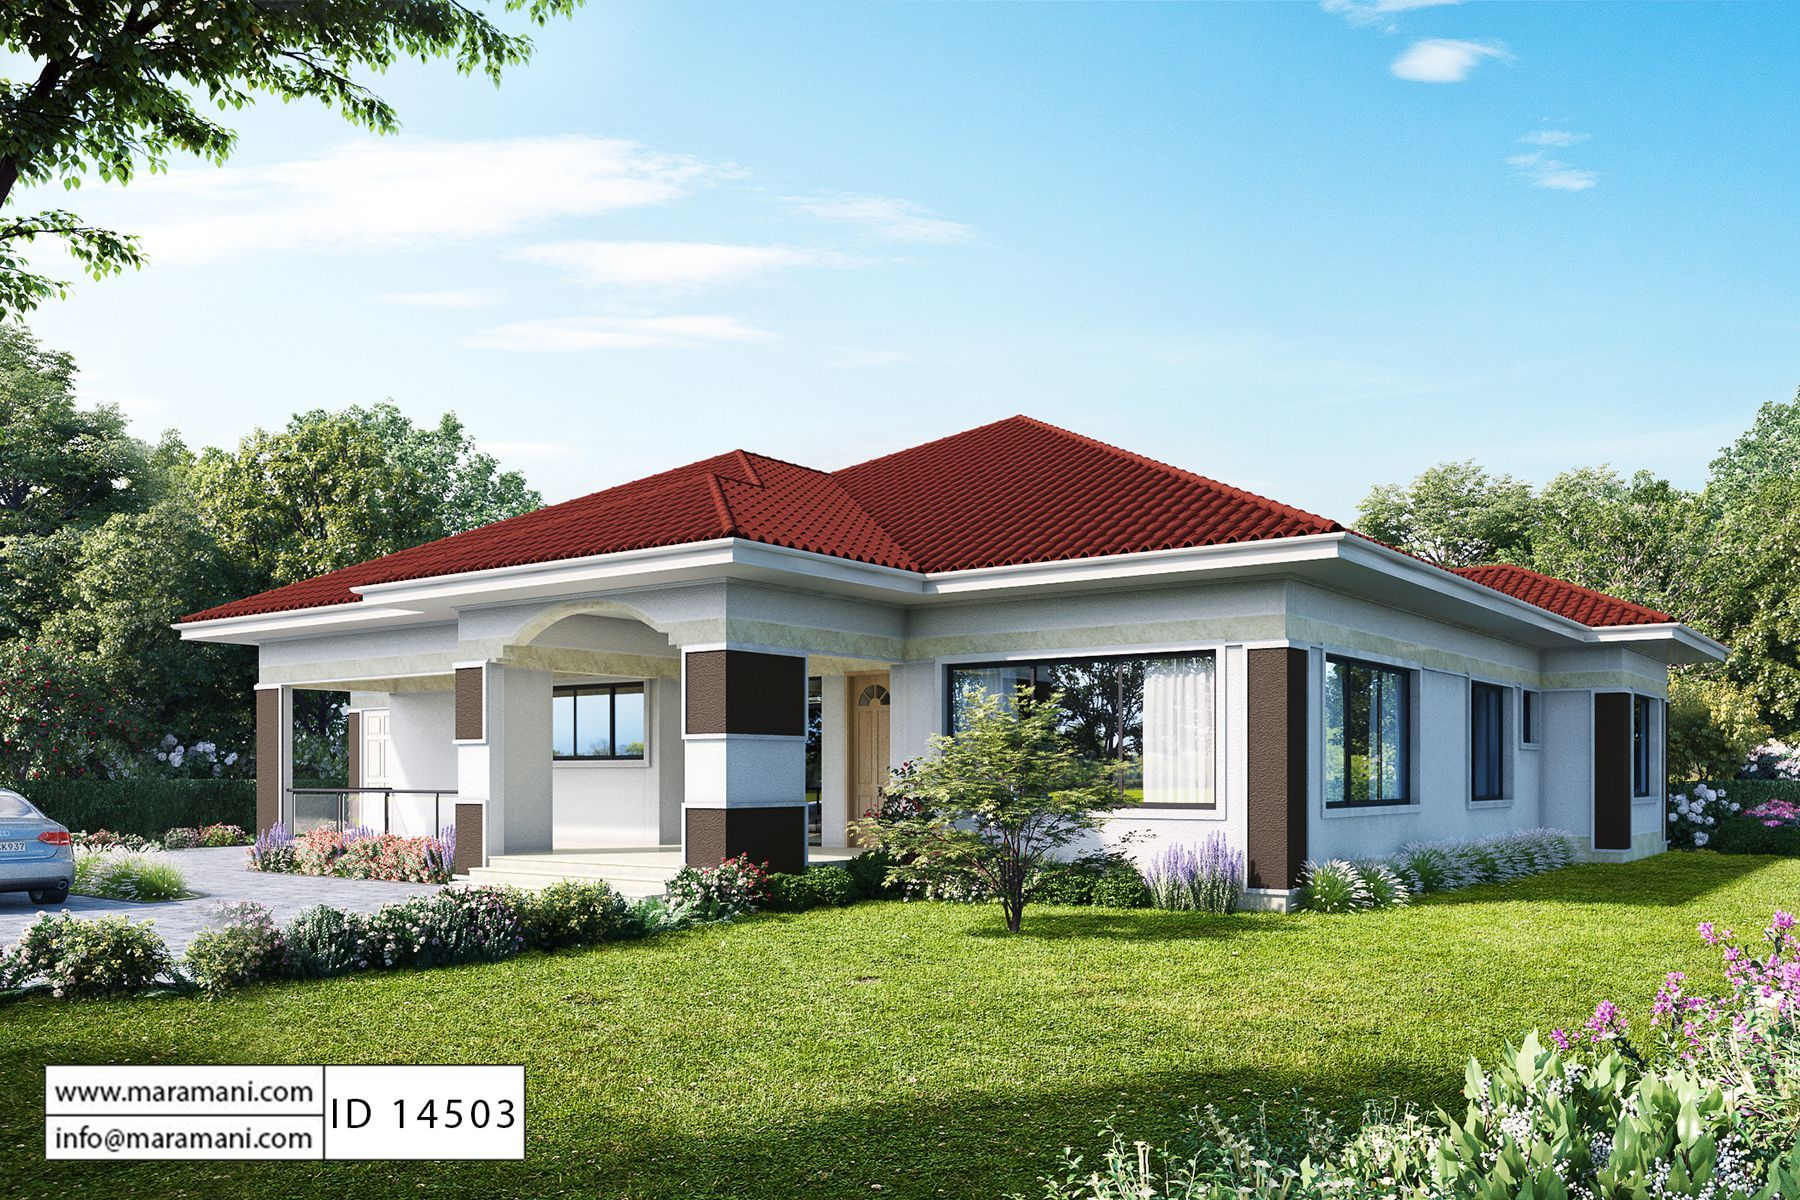 4 Bedroom House Plan Id 14503 House Roof Design Modern Bungalow House Bedroom House Plans